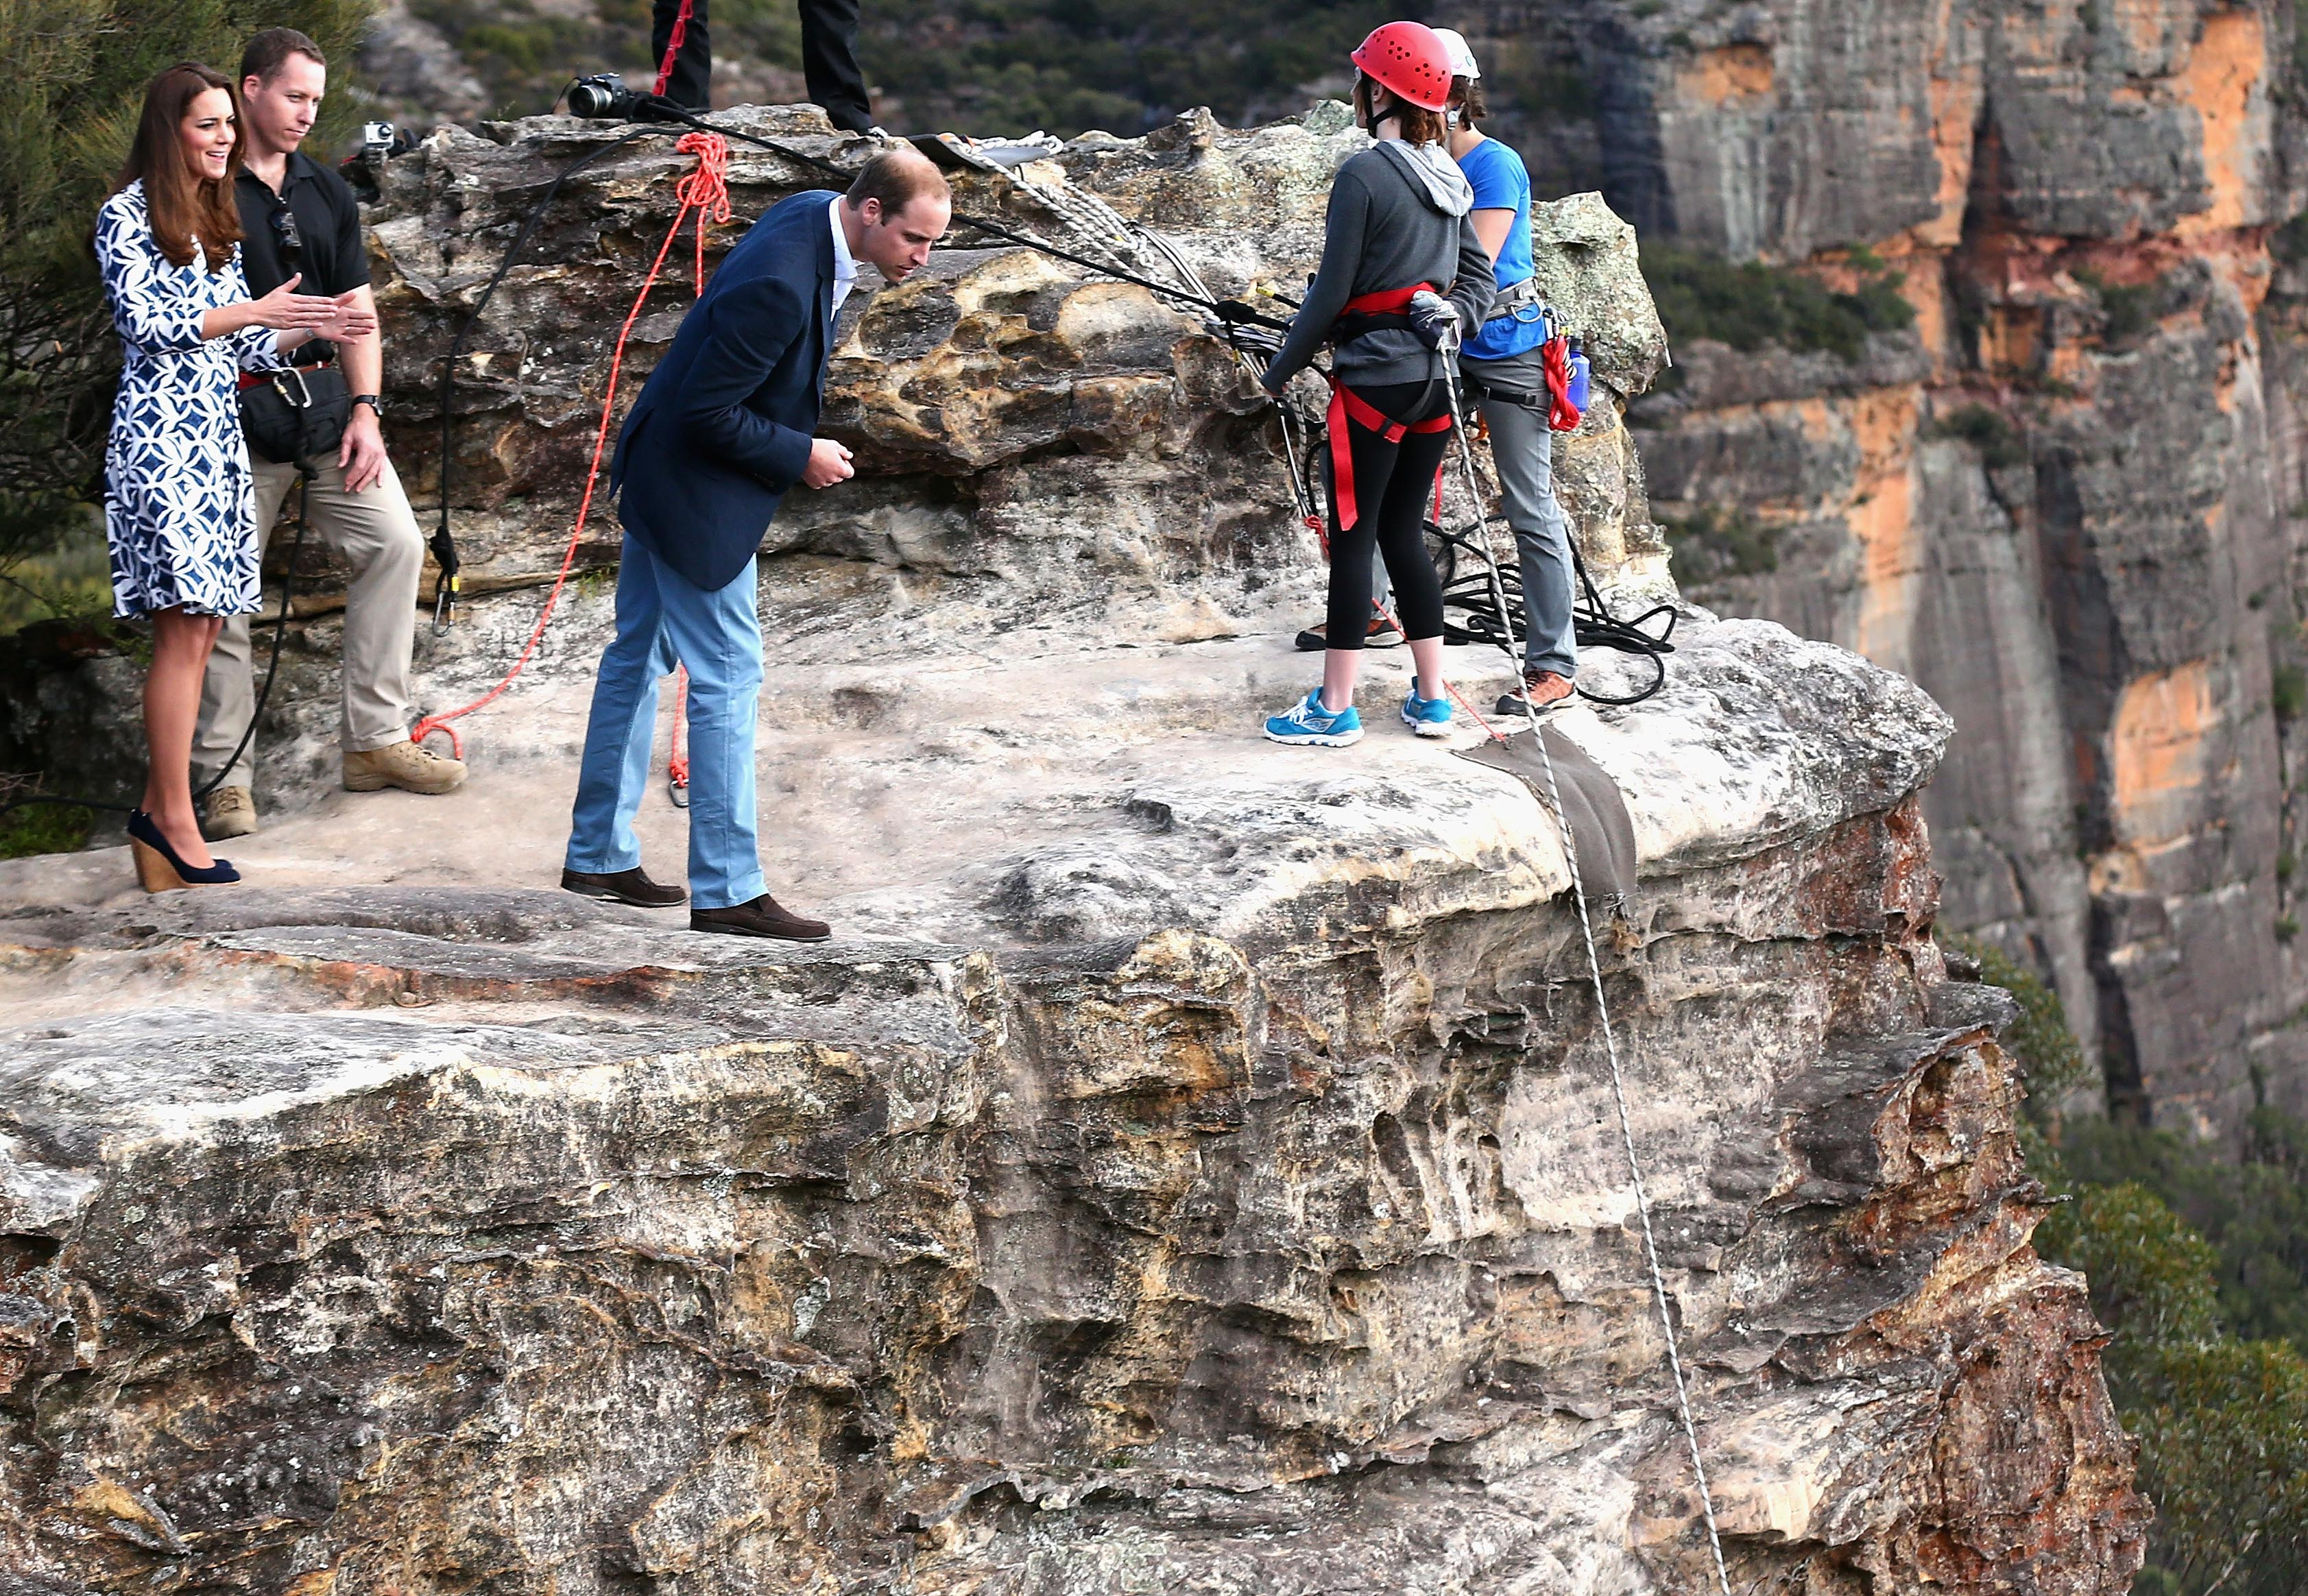 Britain's Prince William, third left, looks over the cliff edge as he and his wife Kate, the Duchess of Cambridge, left, observe abseiling and team building exercises at Narrow Neck Lookout near Katoomba, Australia, Thursday, April 17, 2014.